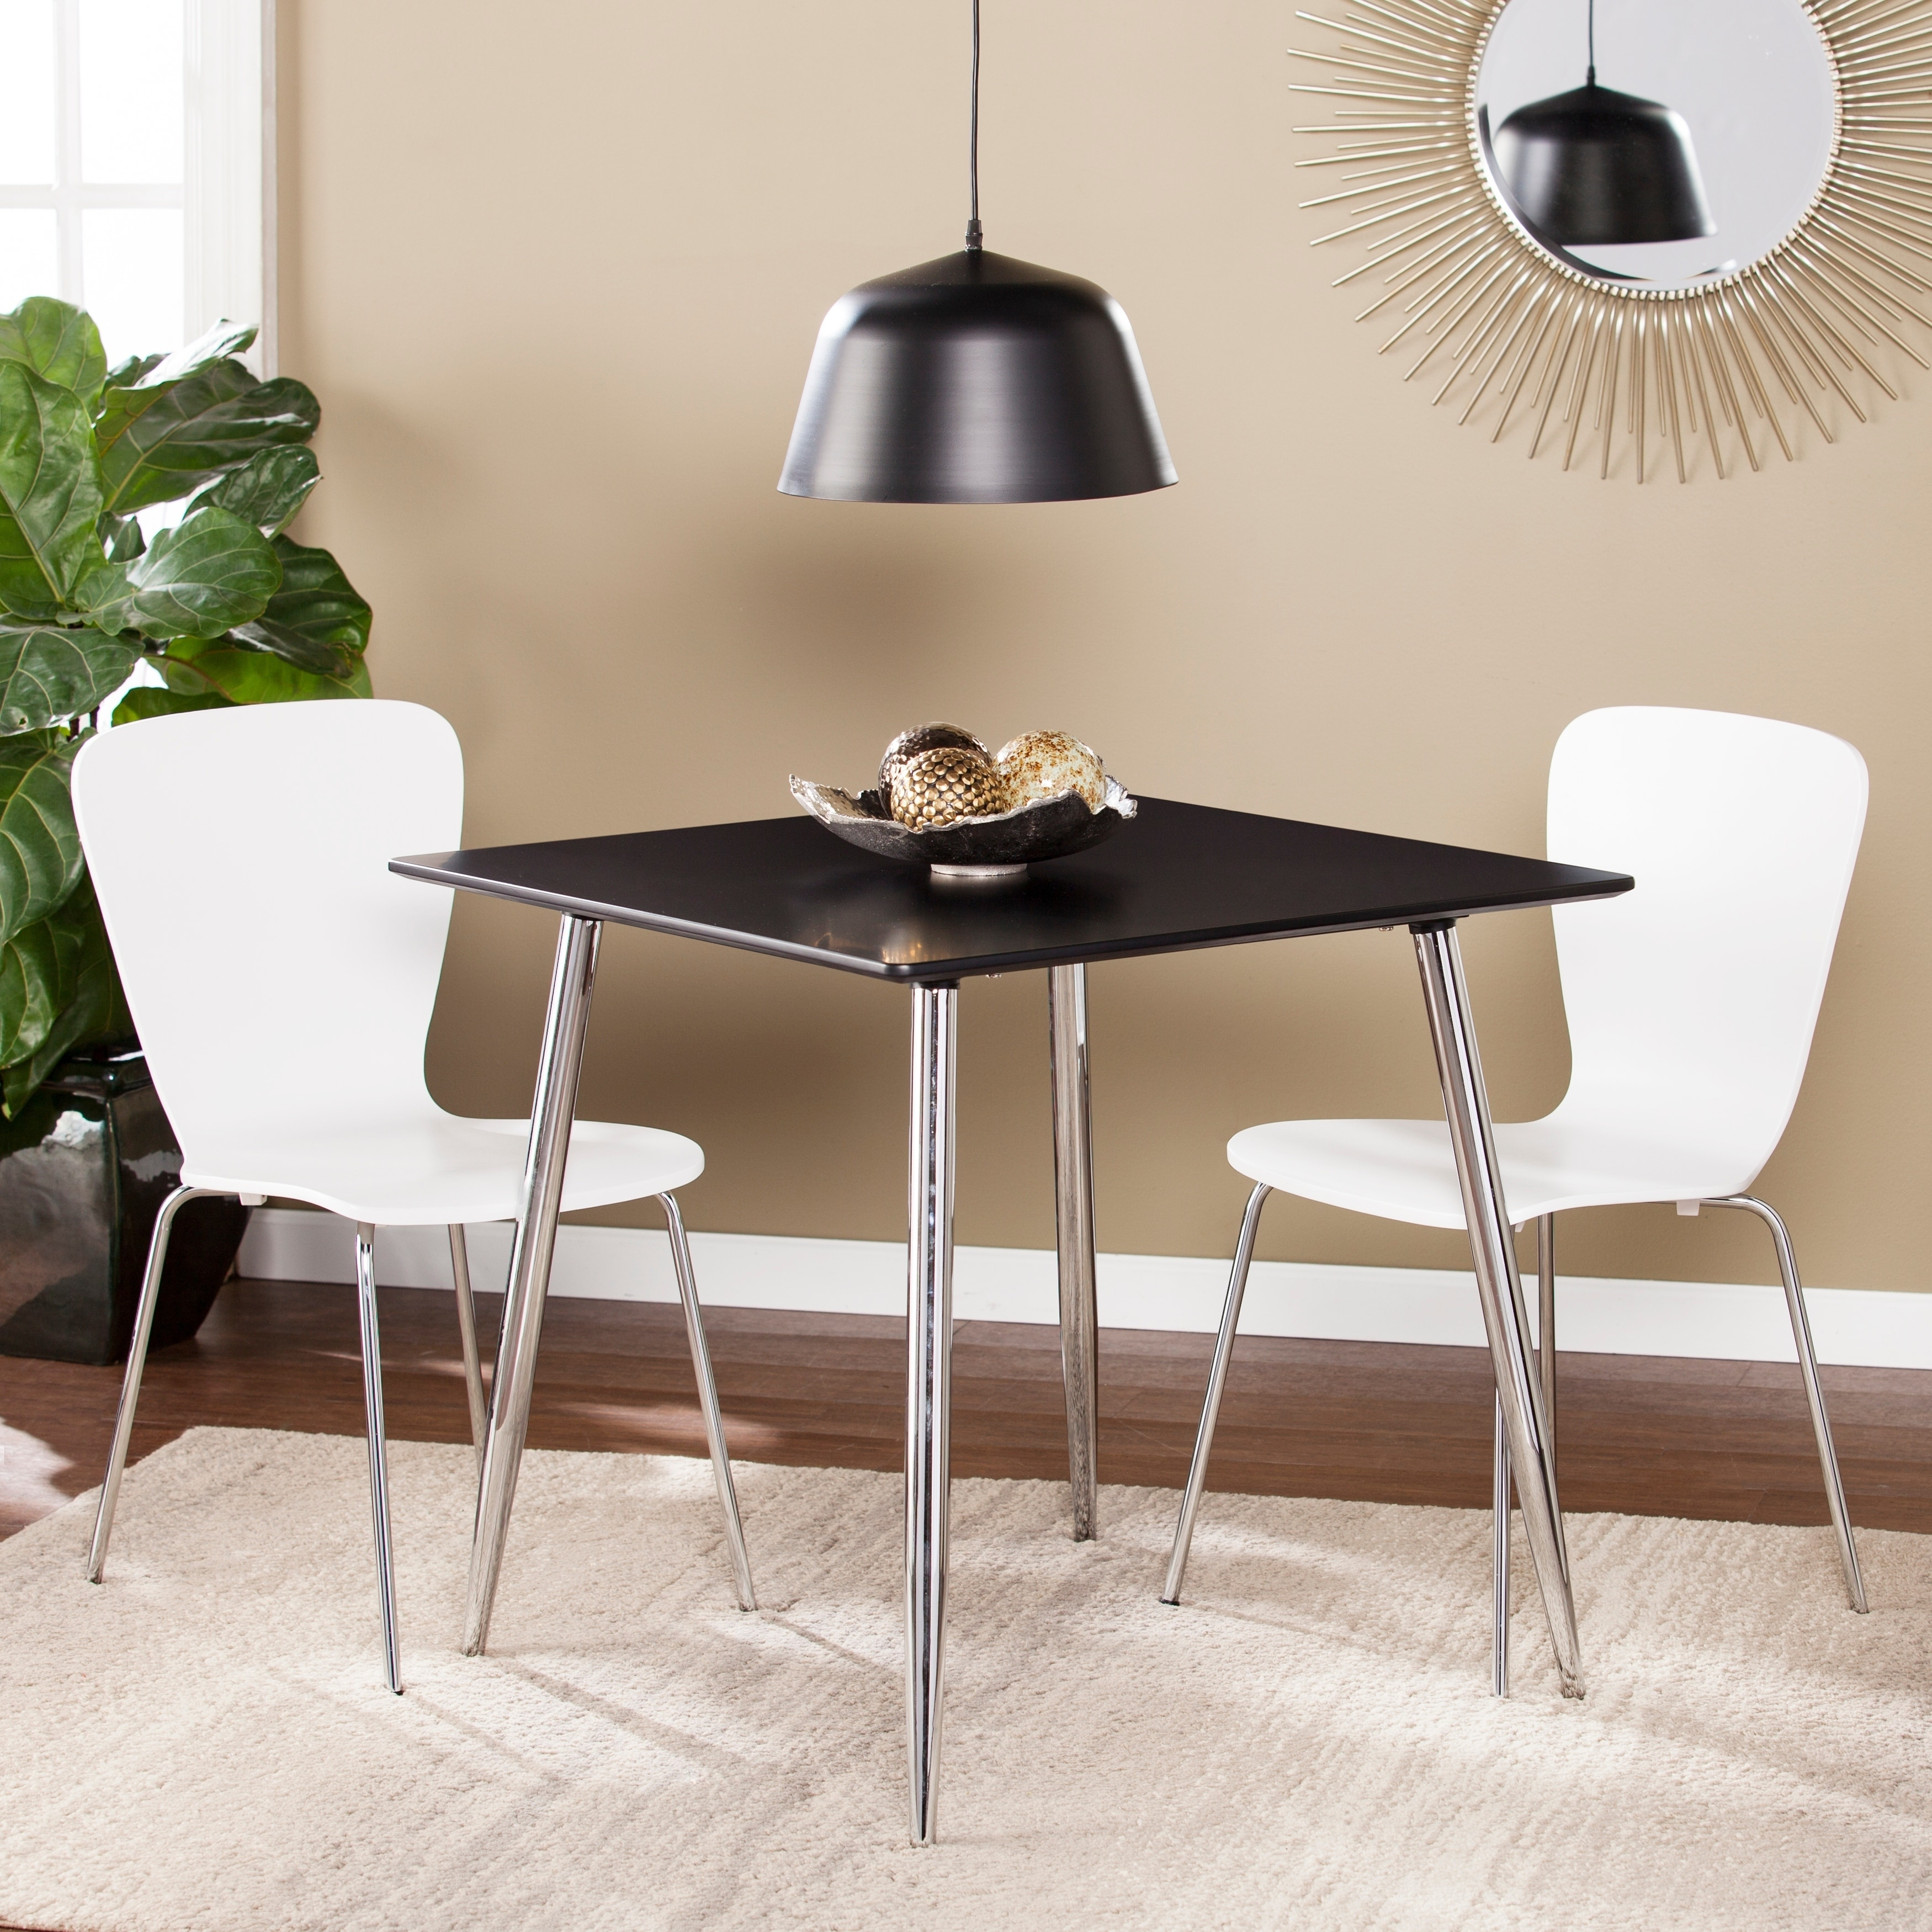 Harper Blvd Berman Black Square Small Space Dining Game Table by Overstock